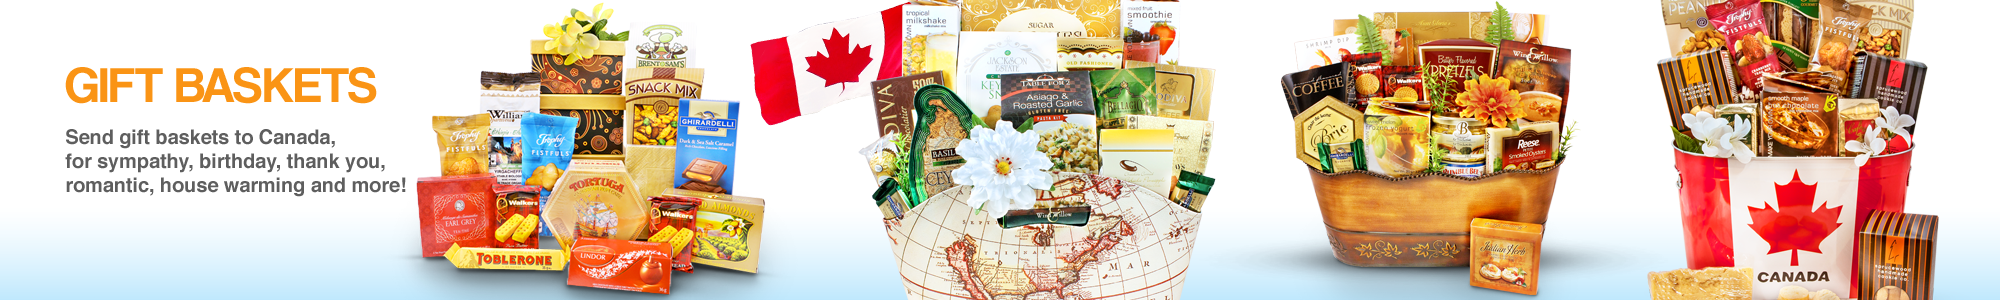 Gift Baskets Canada - Gourmet Gift Basket Store